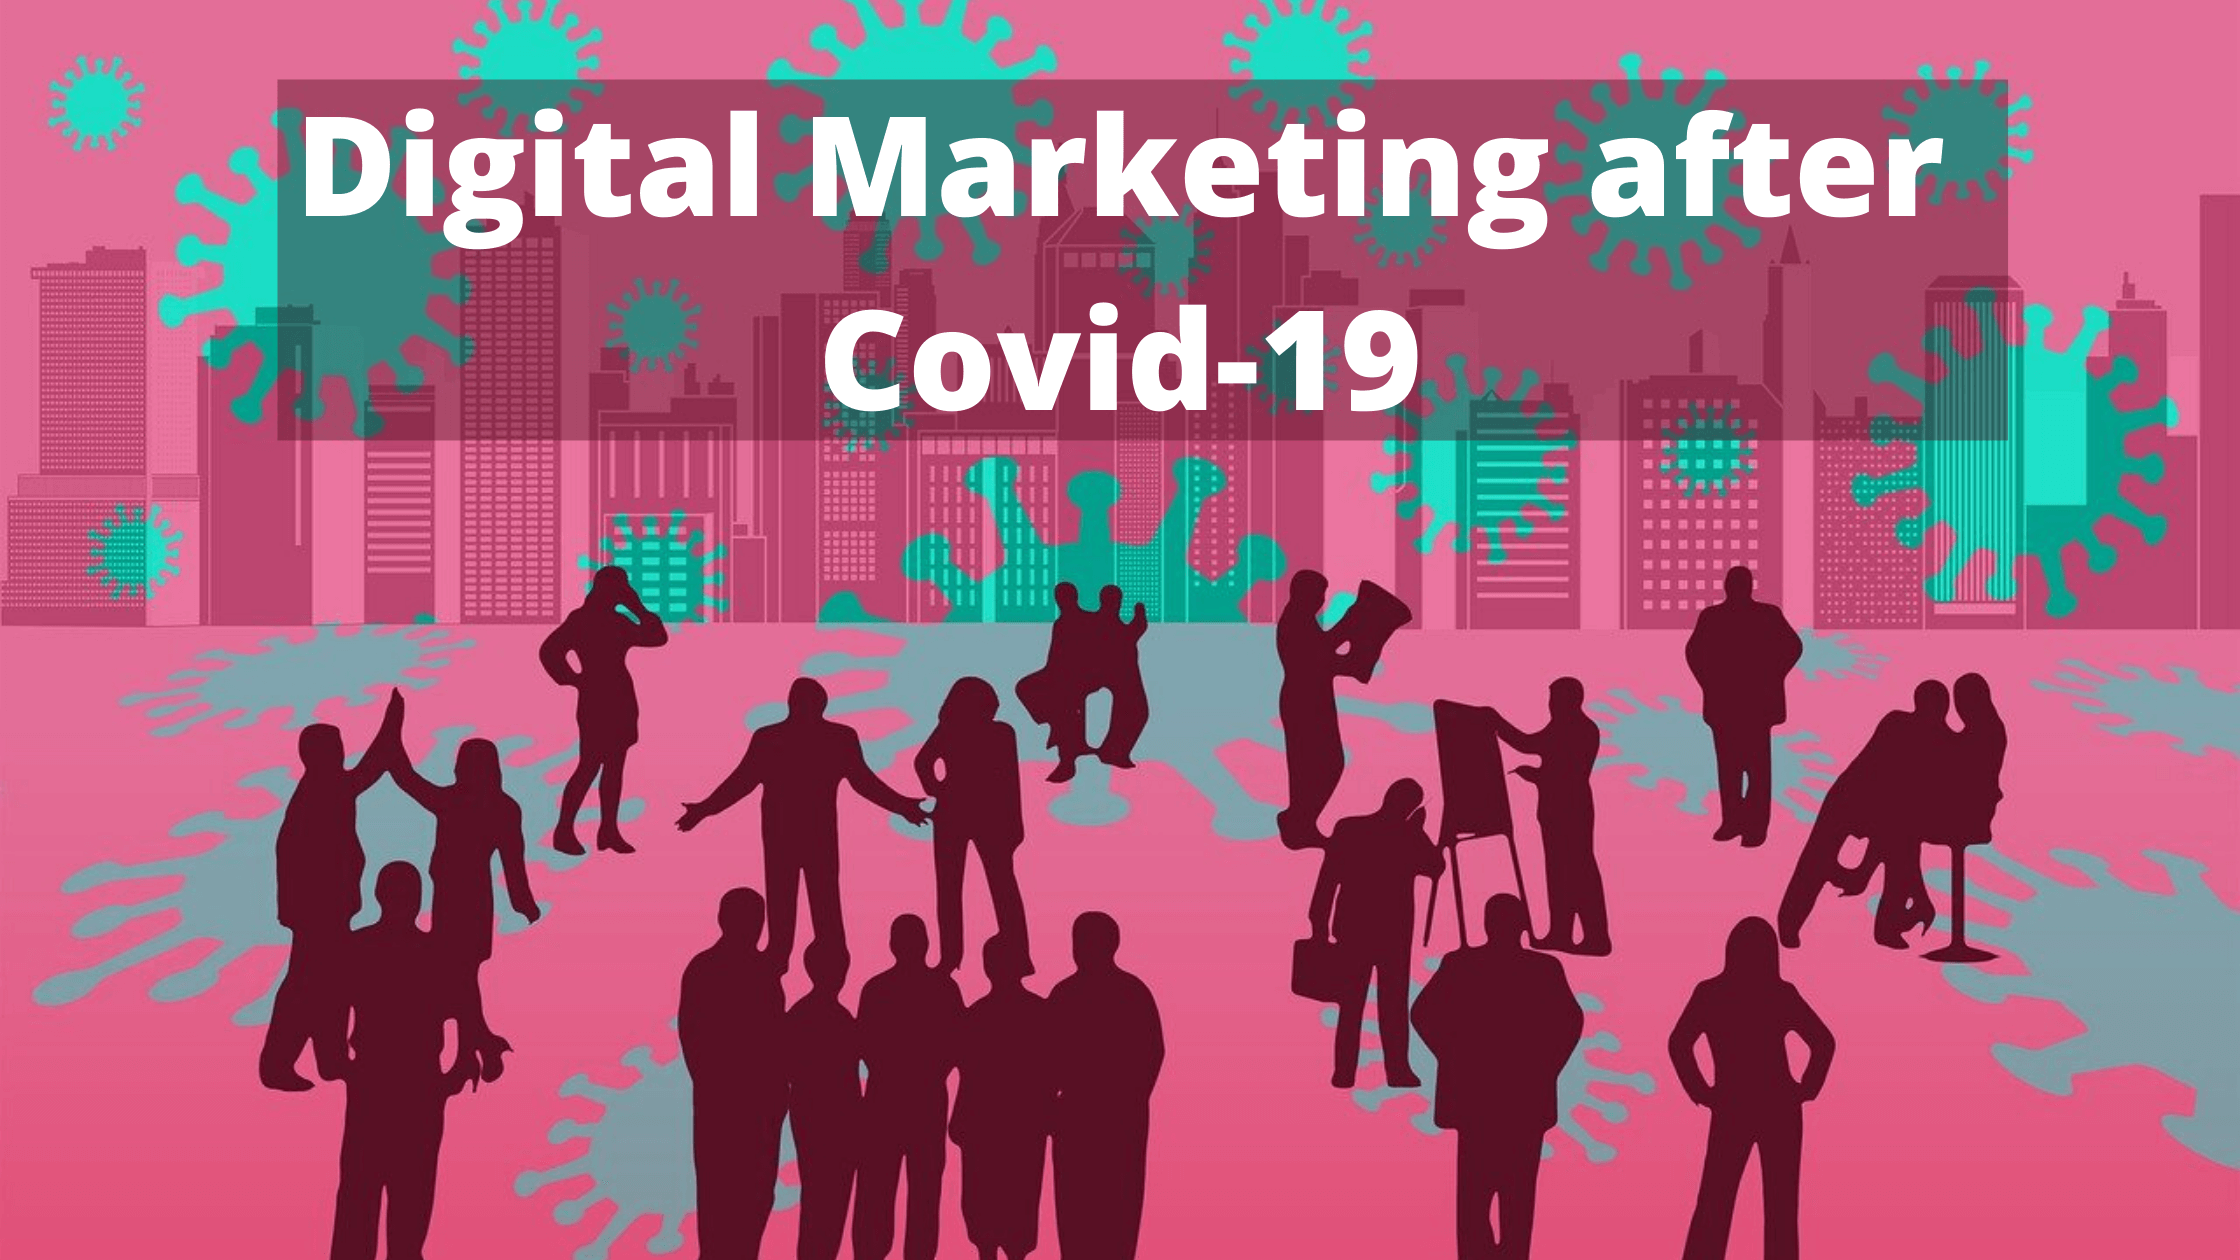 Digital Marketing after Covid-19 Crisis